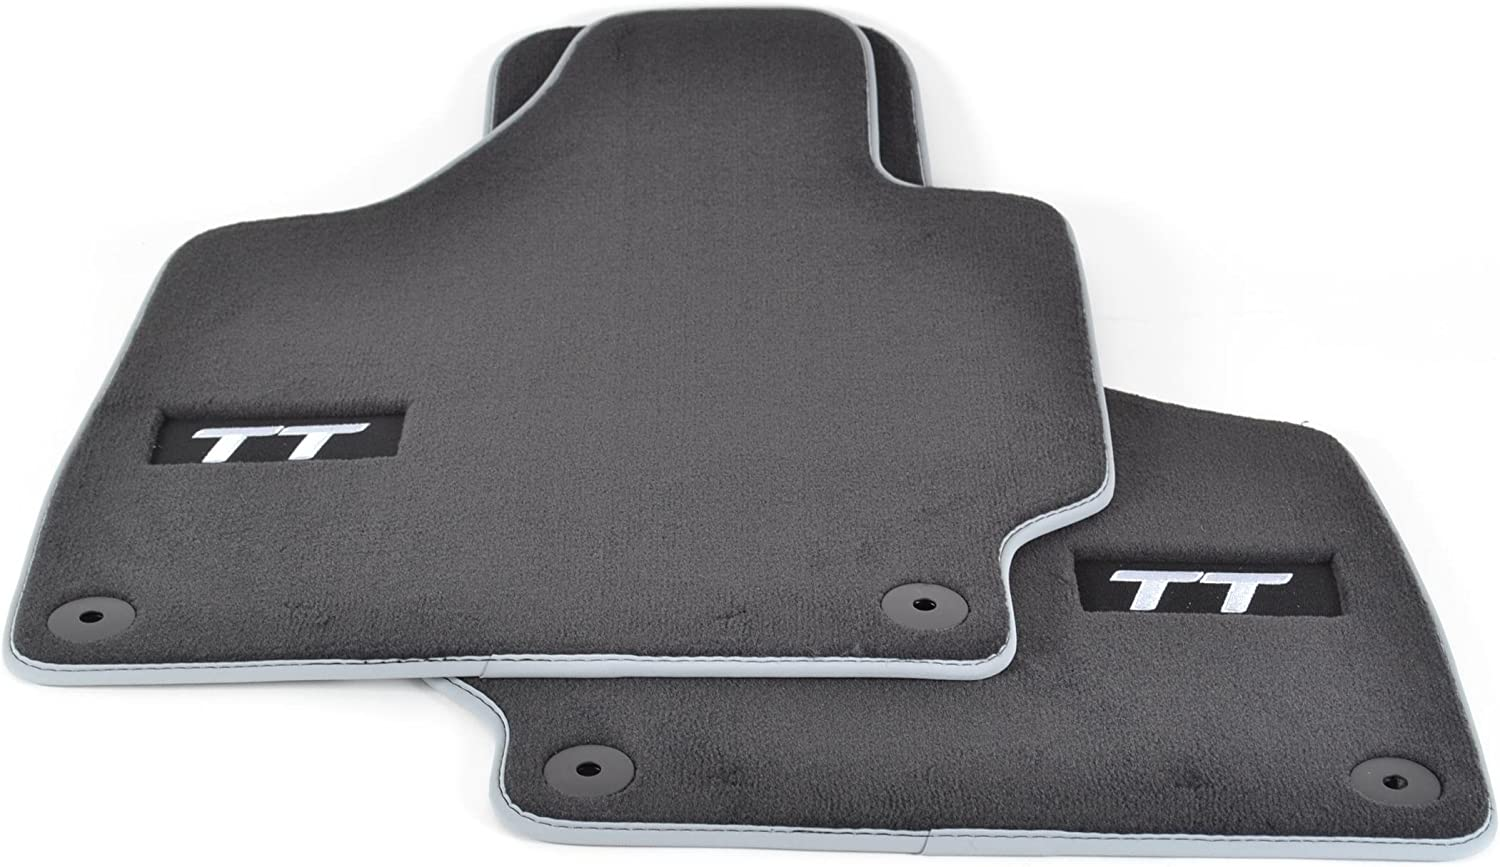 CLASSIC Tailored Black Car Floor Mats 2-Piece AUDI TT Mk2 2006-2014